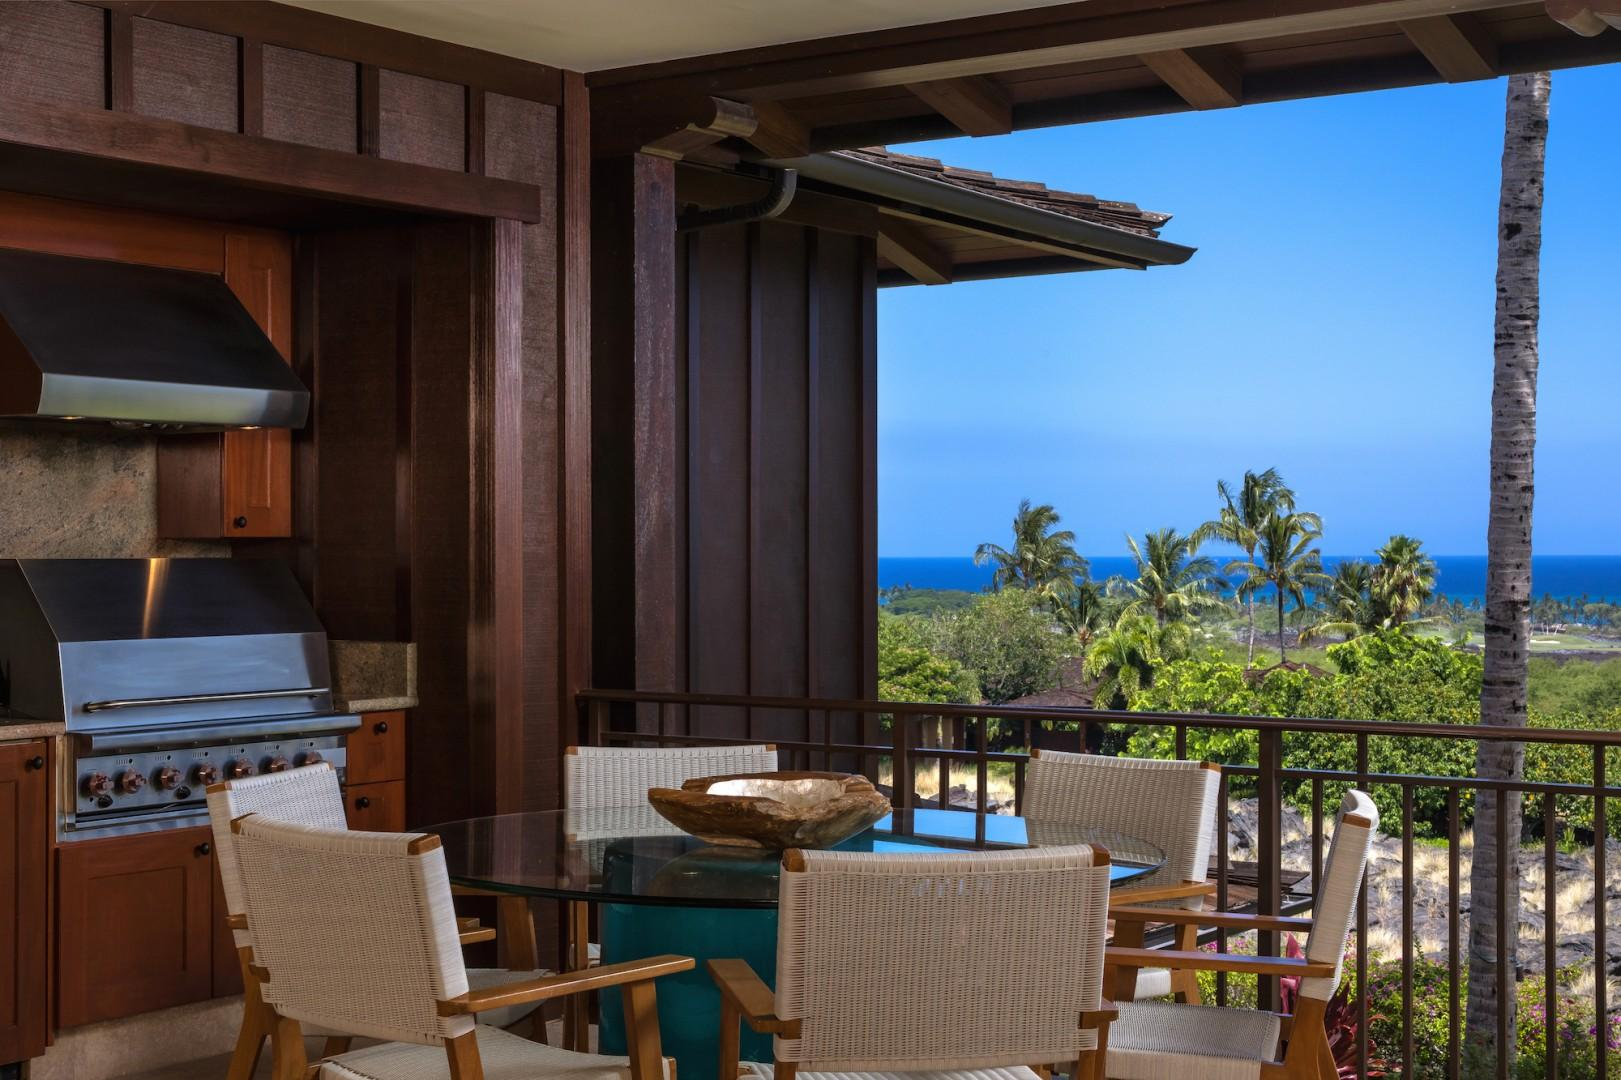 Other side of capacious lanai with loungers, barbecue grill, and dining area for six.